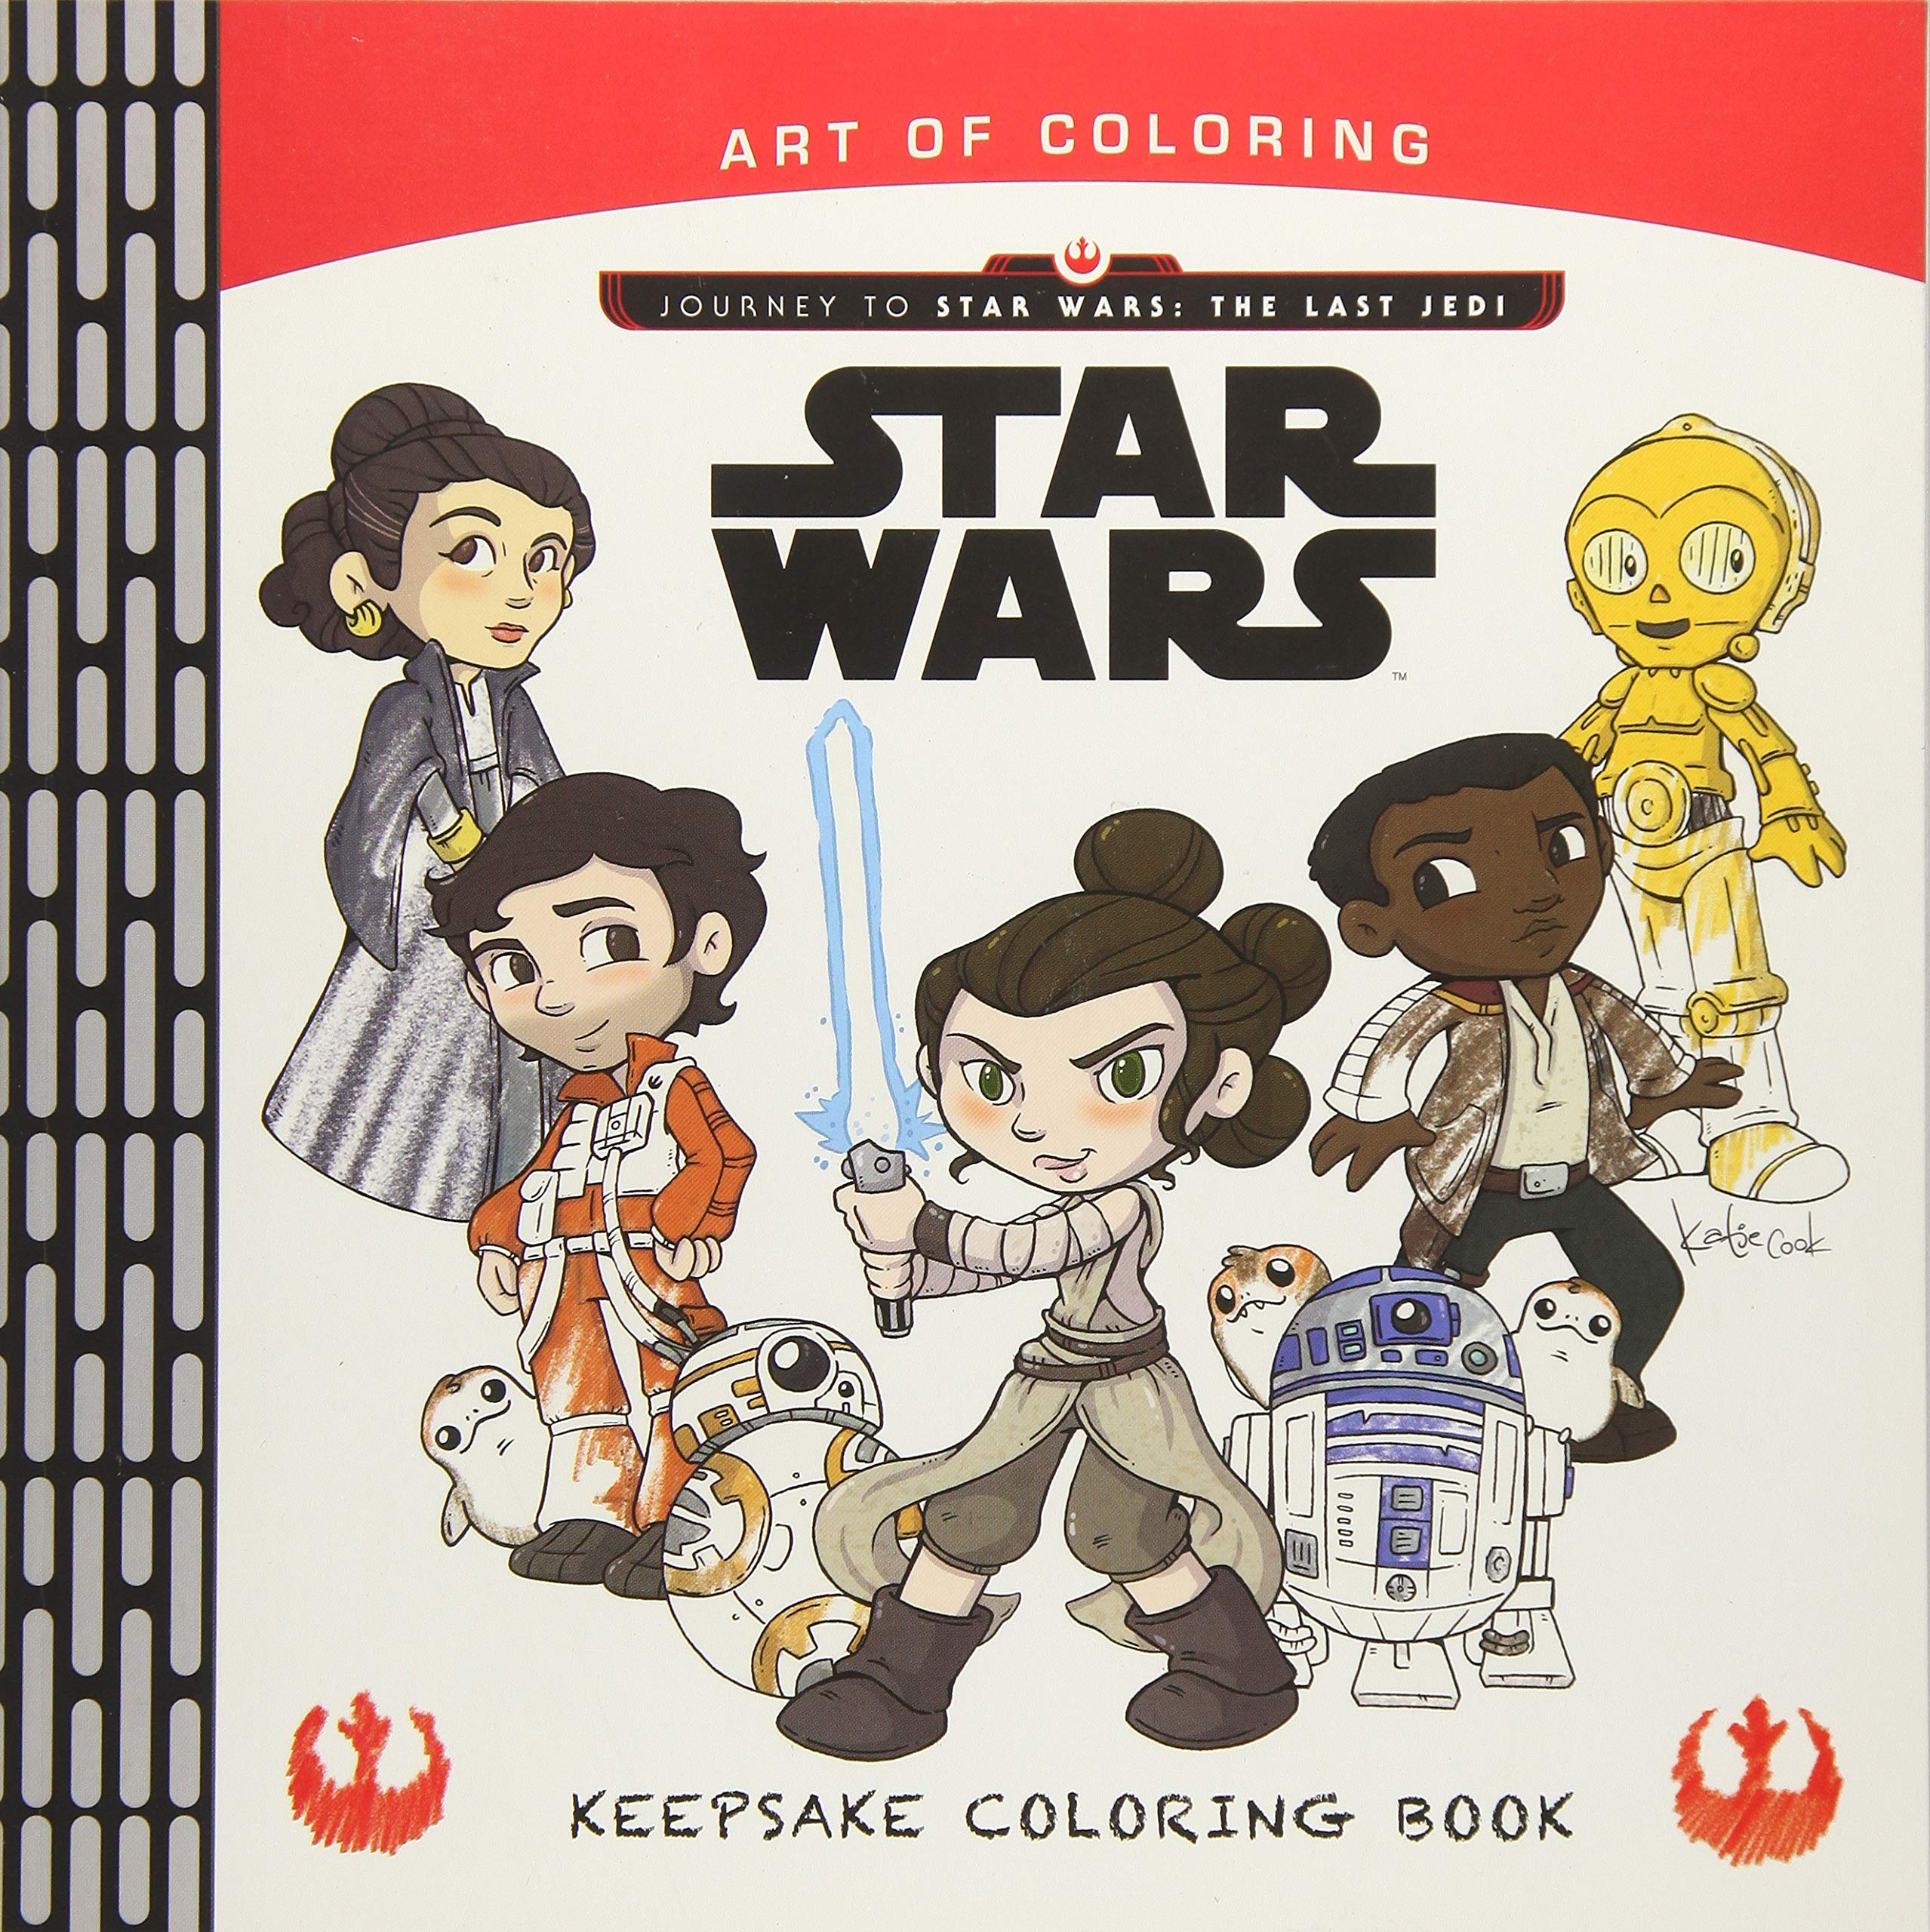 - Amazon.com: Art Of Coloring Journey To Star Wars: The Last Jedi